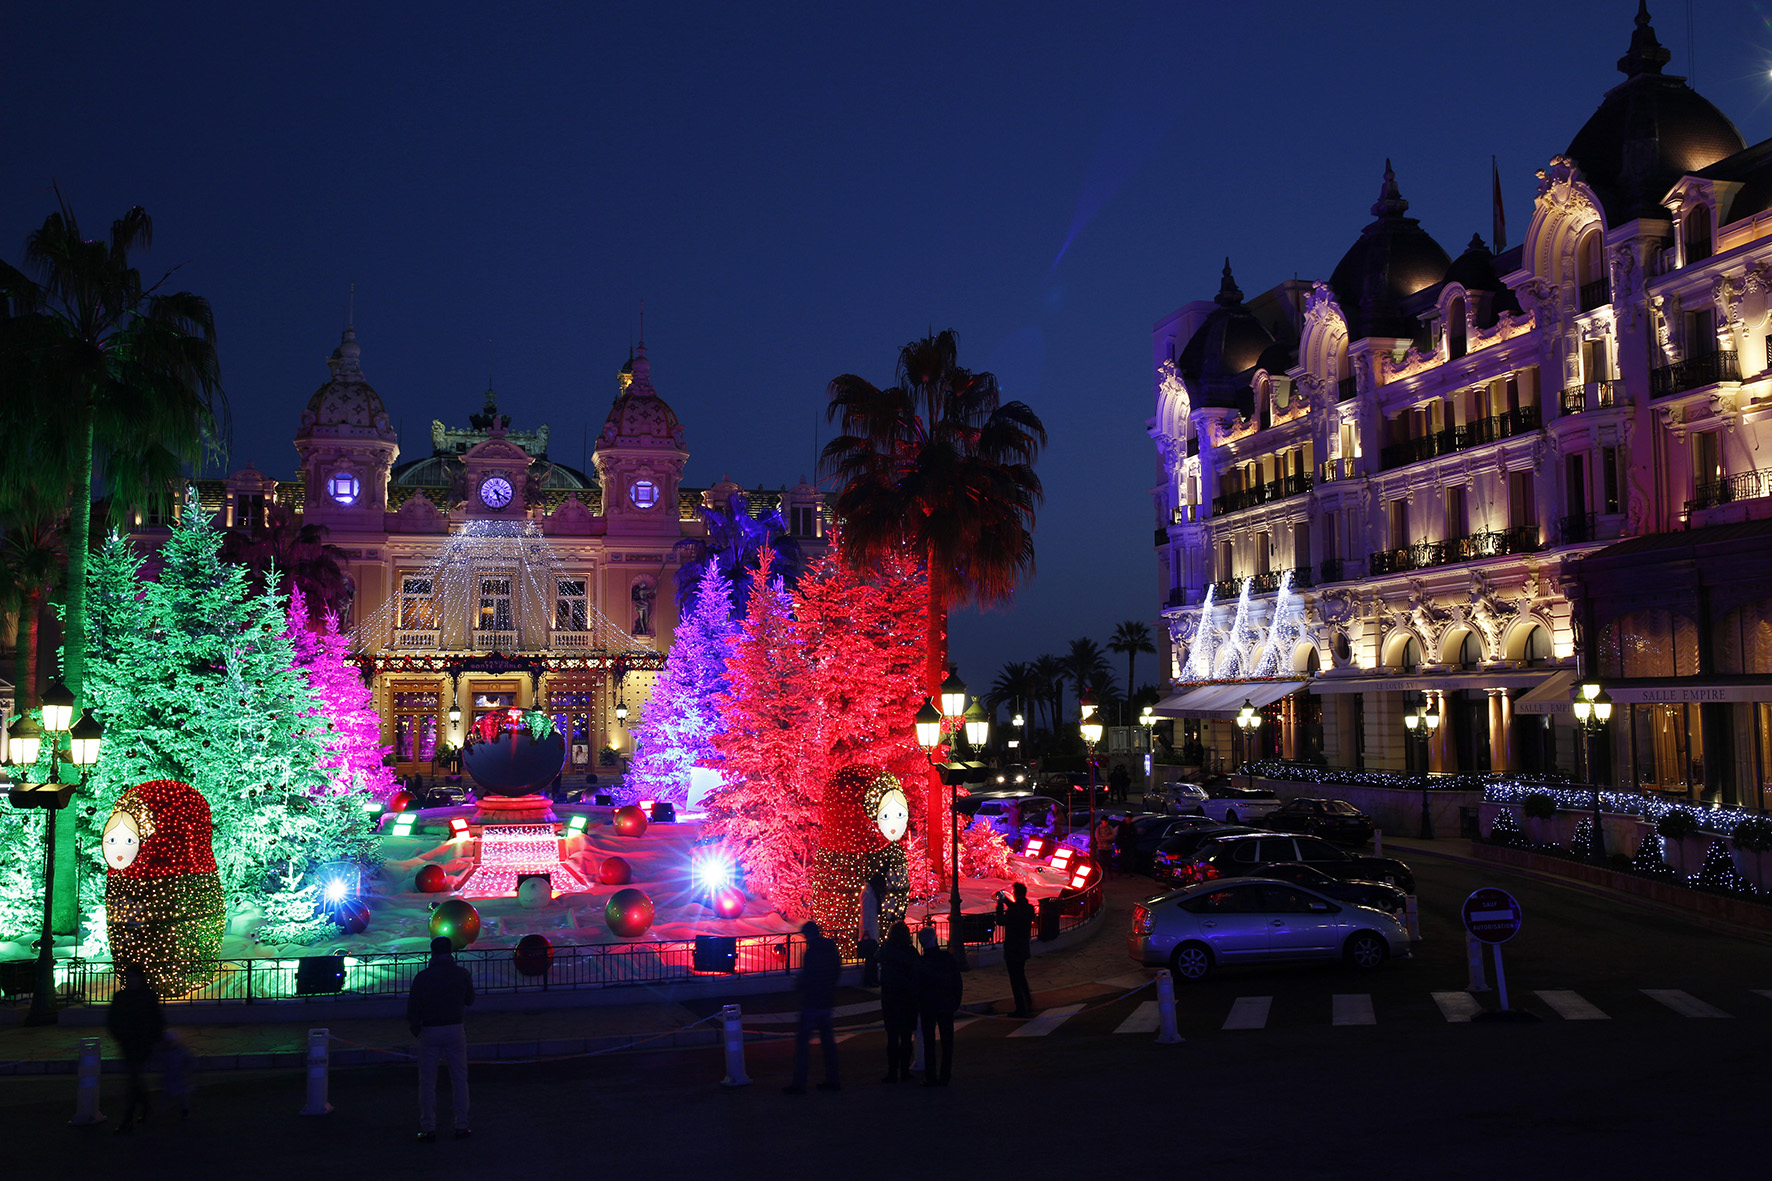 ILLUMINATIONS PLACE DU CASINOG